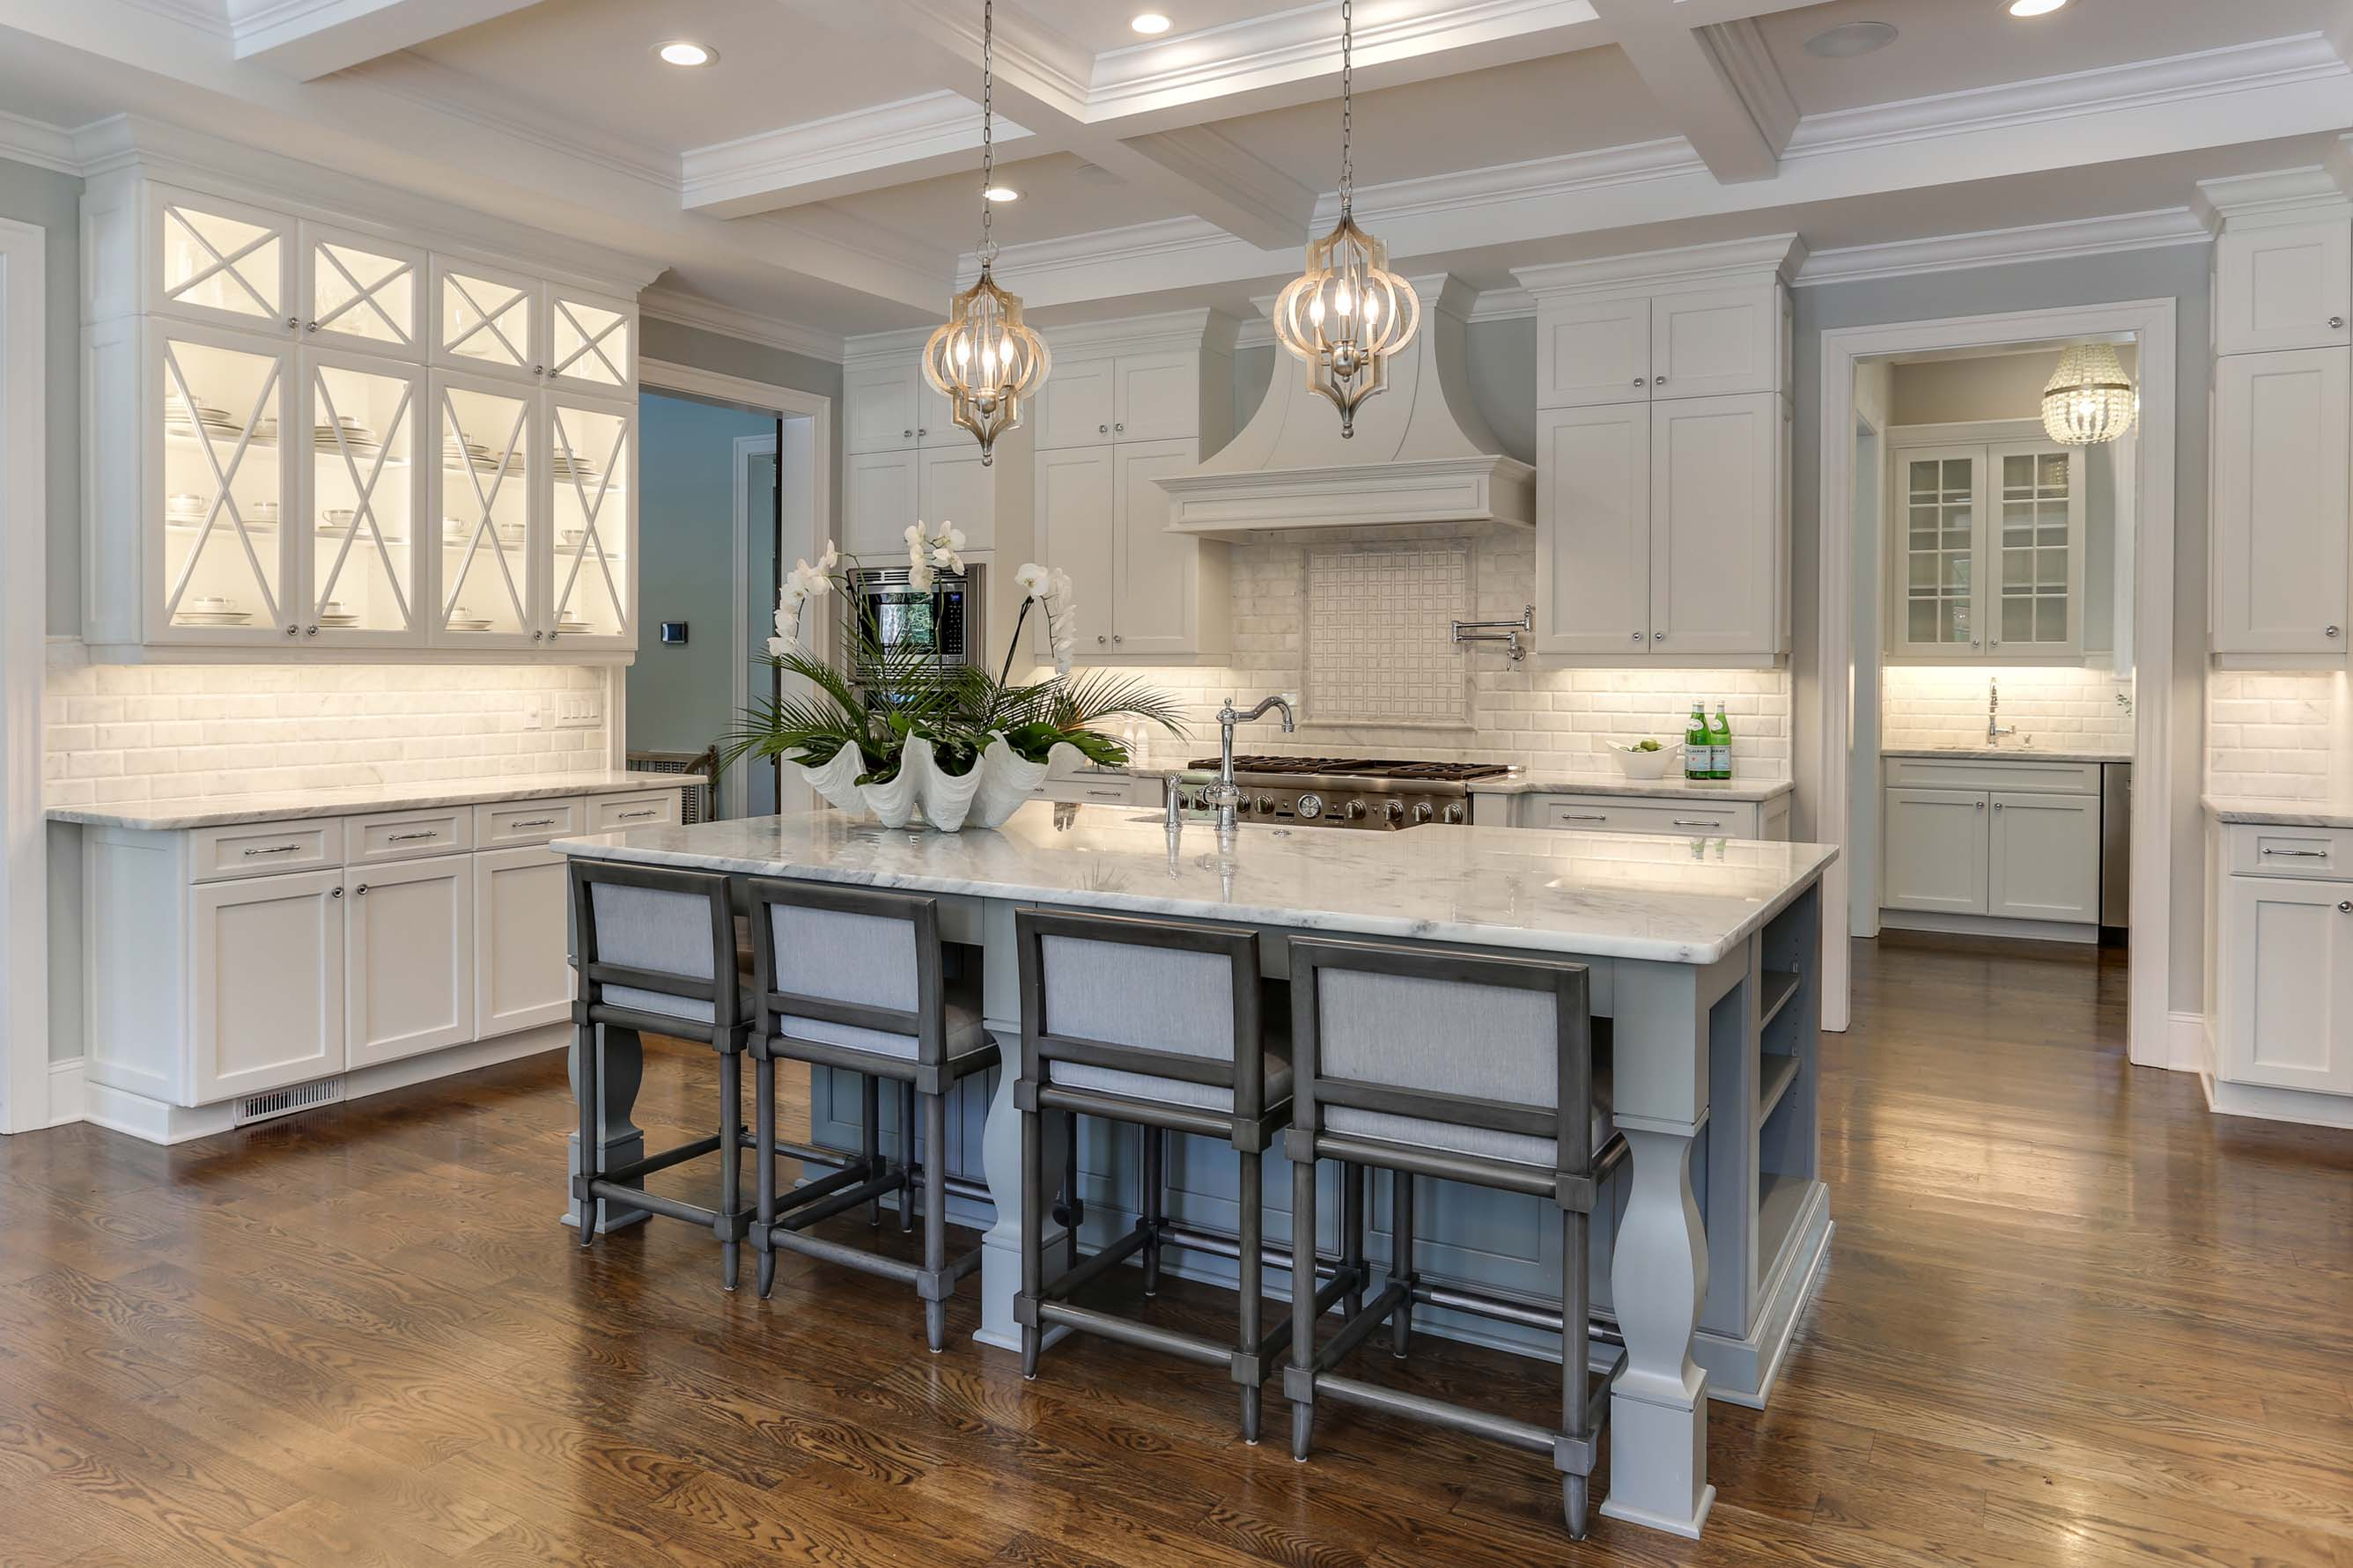 Ordinaire Teal Interior Design | Raleigh, Wilmington Interior Design